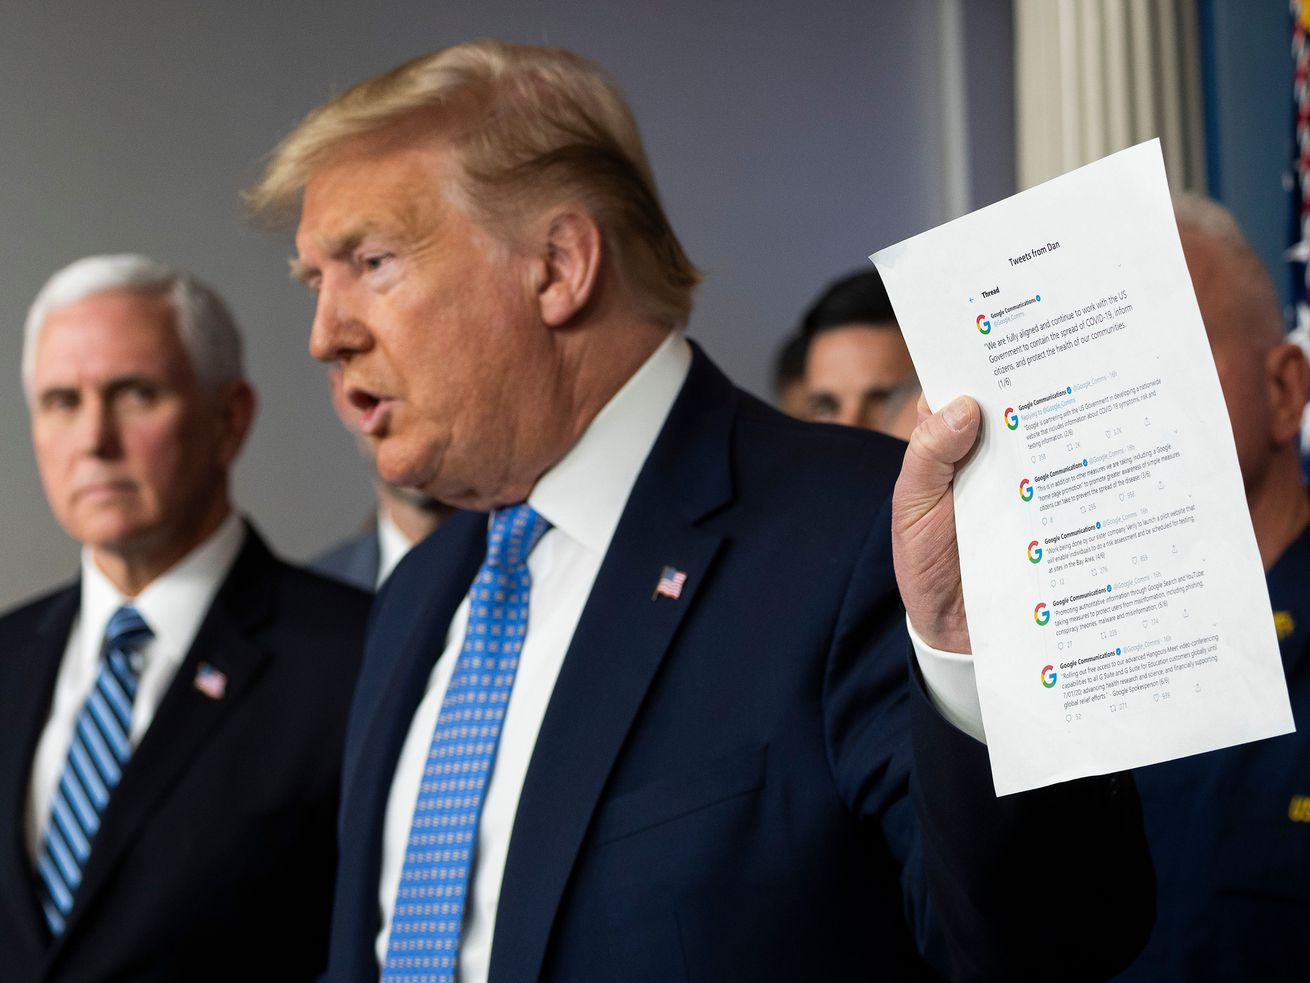 President Trump holds up a print out of tweets from Google's communication team.